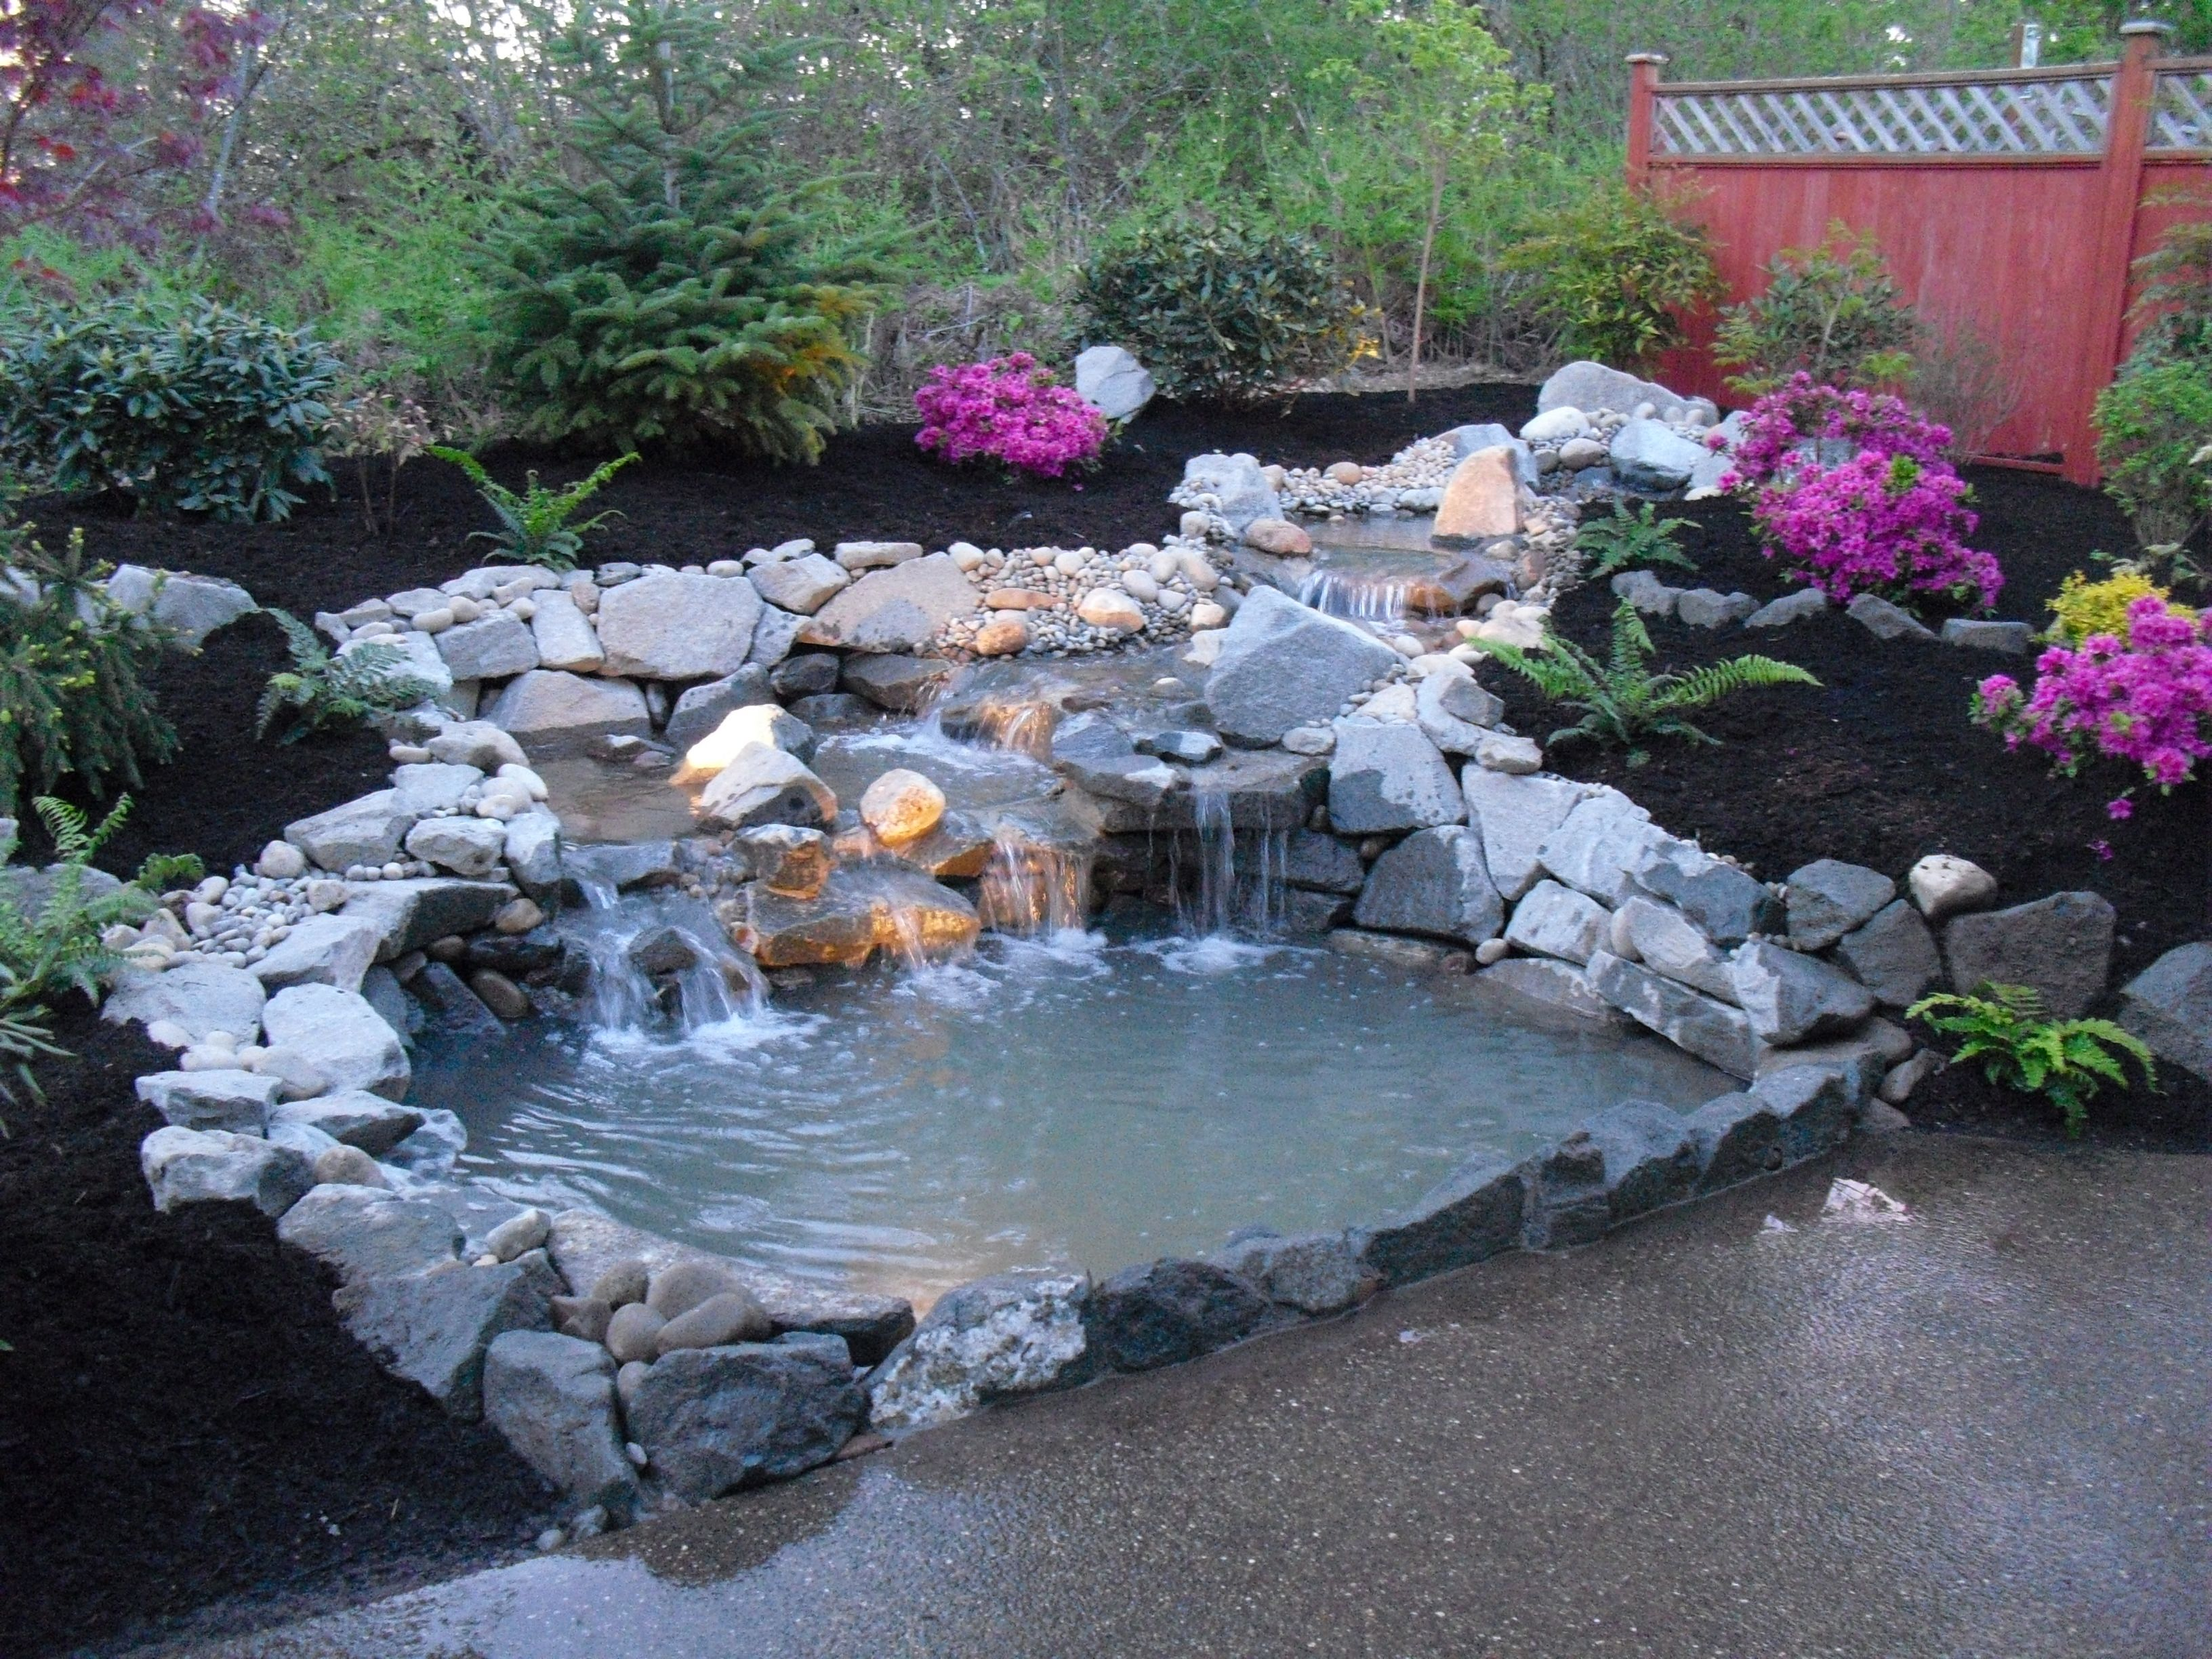 Backyard Waterfalls Ideas 7 backyard waterfall ideas Traditional Home Page 2 Home Garden Design Ideas With Decking